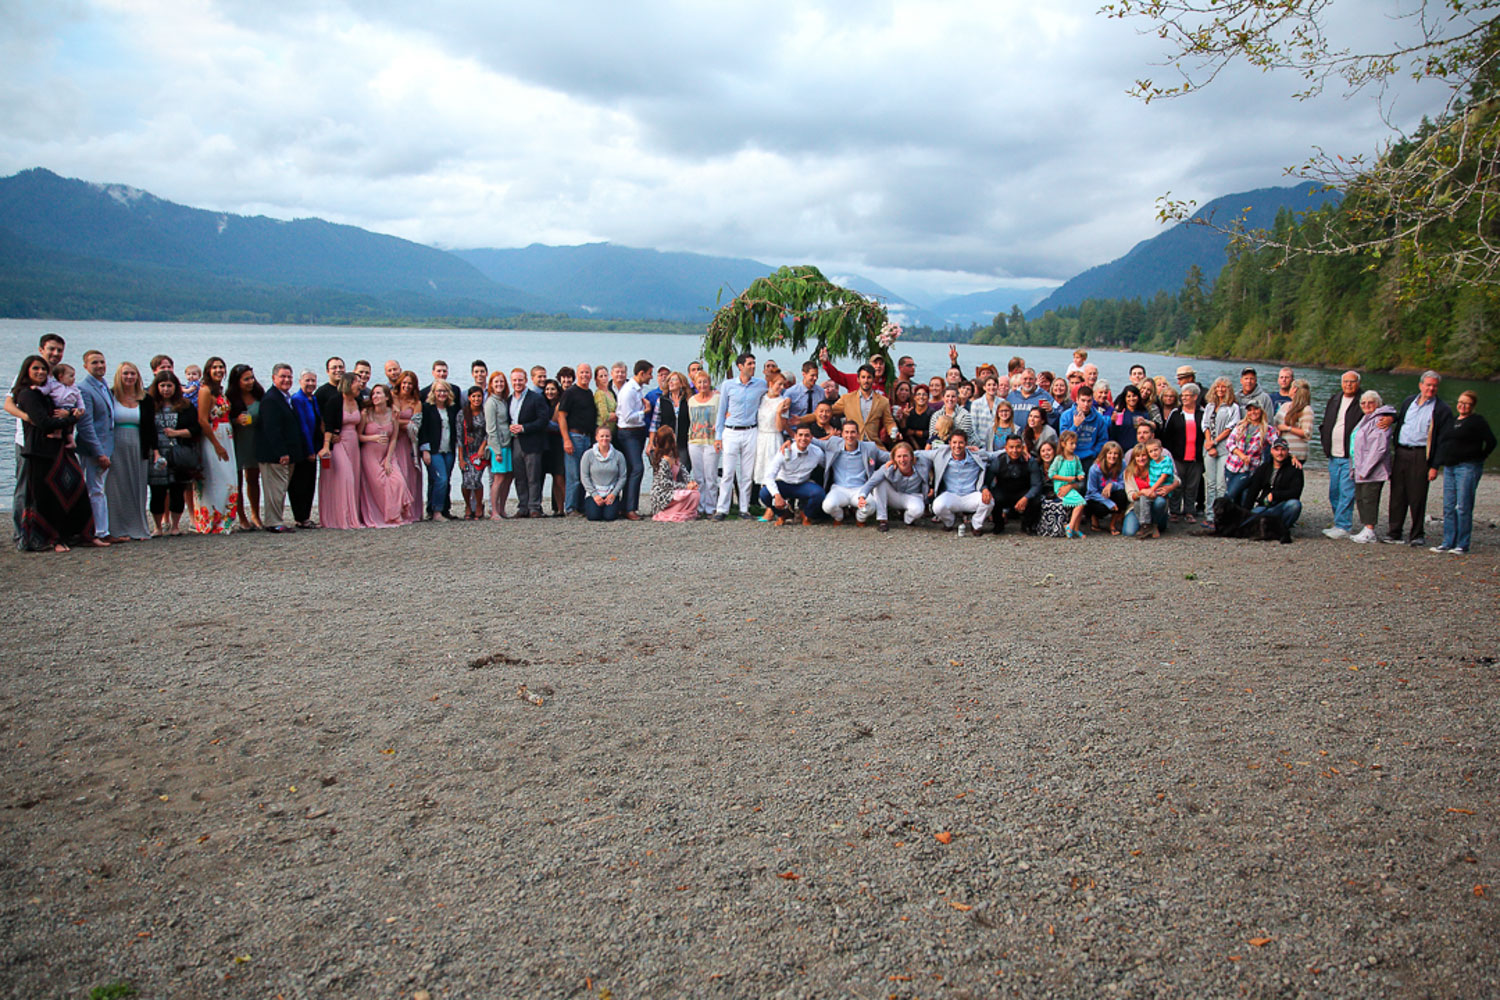 Wedding Photos Lake Quinault Lodge Washington94.jpg